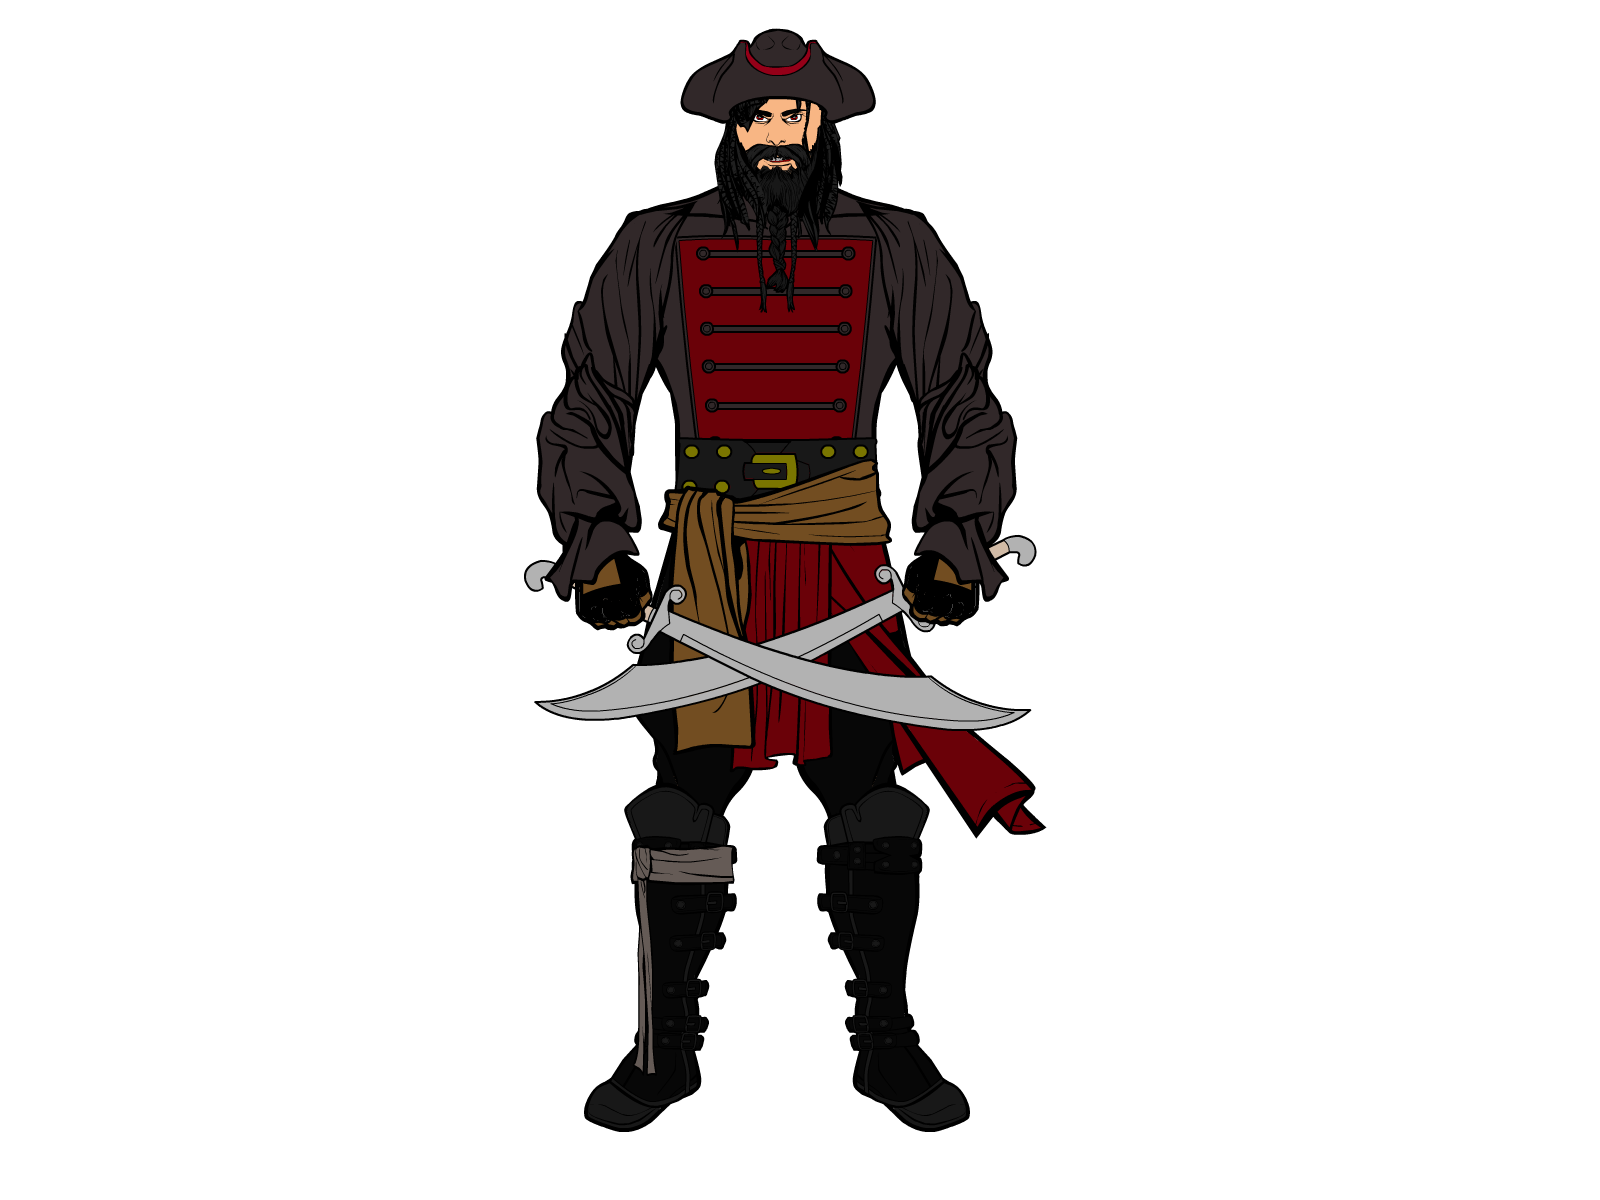 http://www.heromachine.com/wp-content/legacy/forum-image-uploads/nha247/2012/03/Black-Beard.png